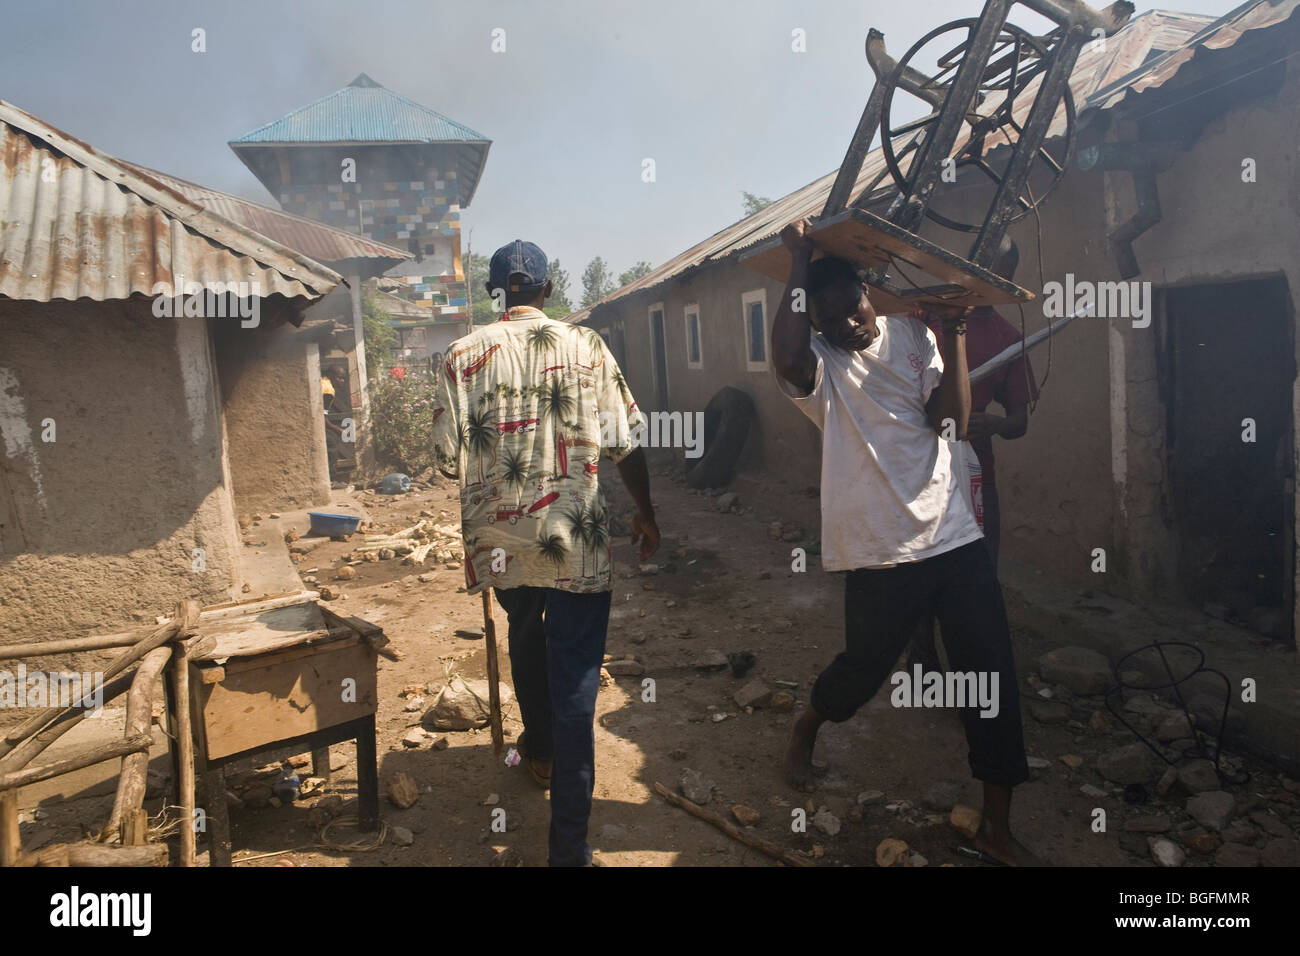 Looters steal furniture from burning houses in a neighborhood in Kisumu, Kenya during the country's post-election - Stock Image